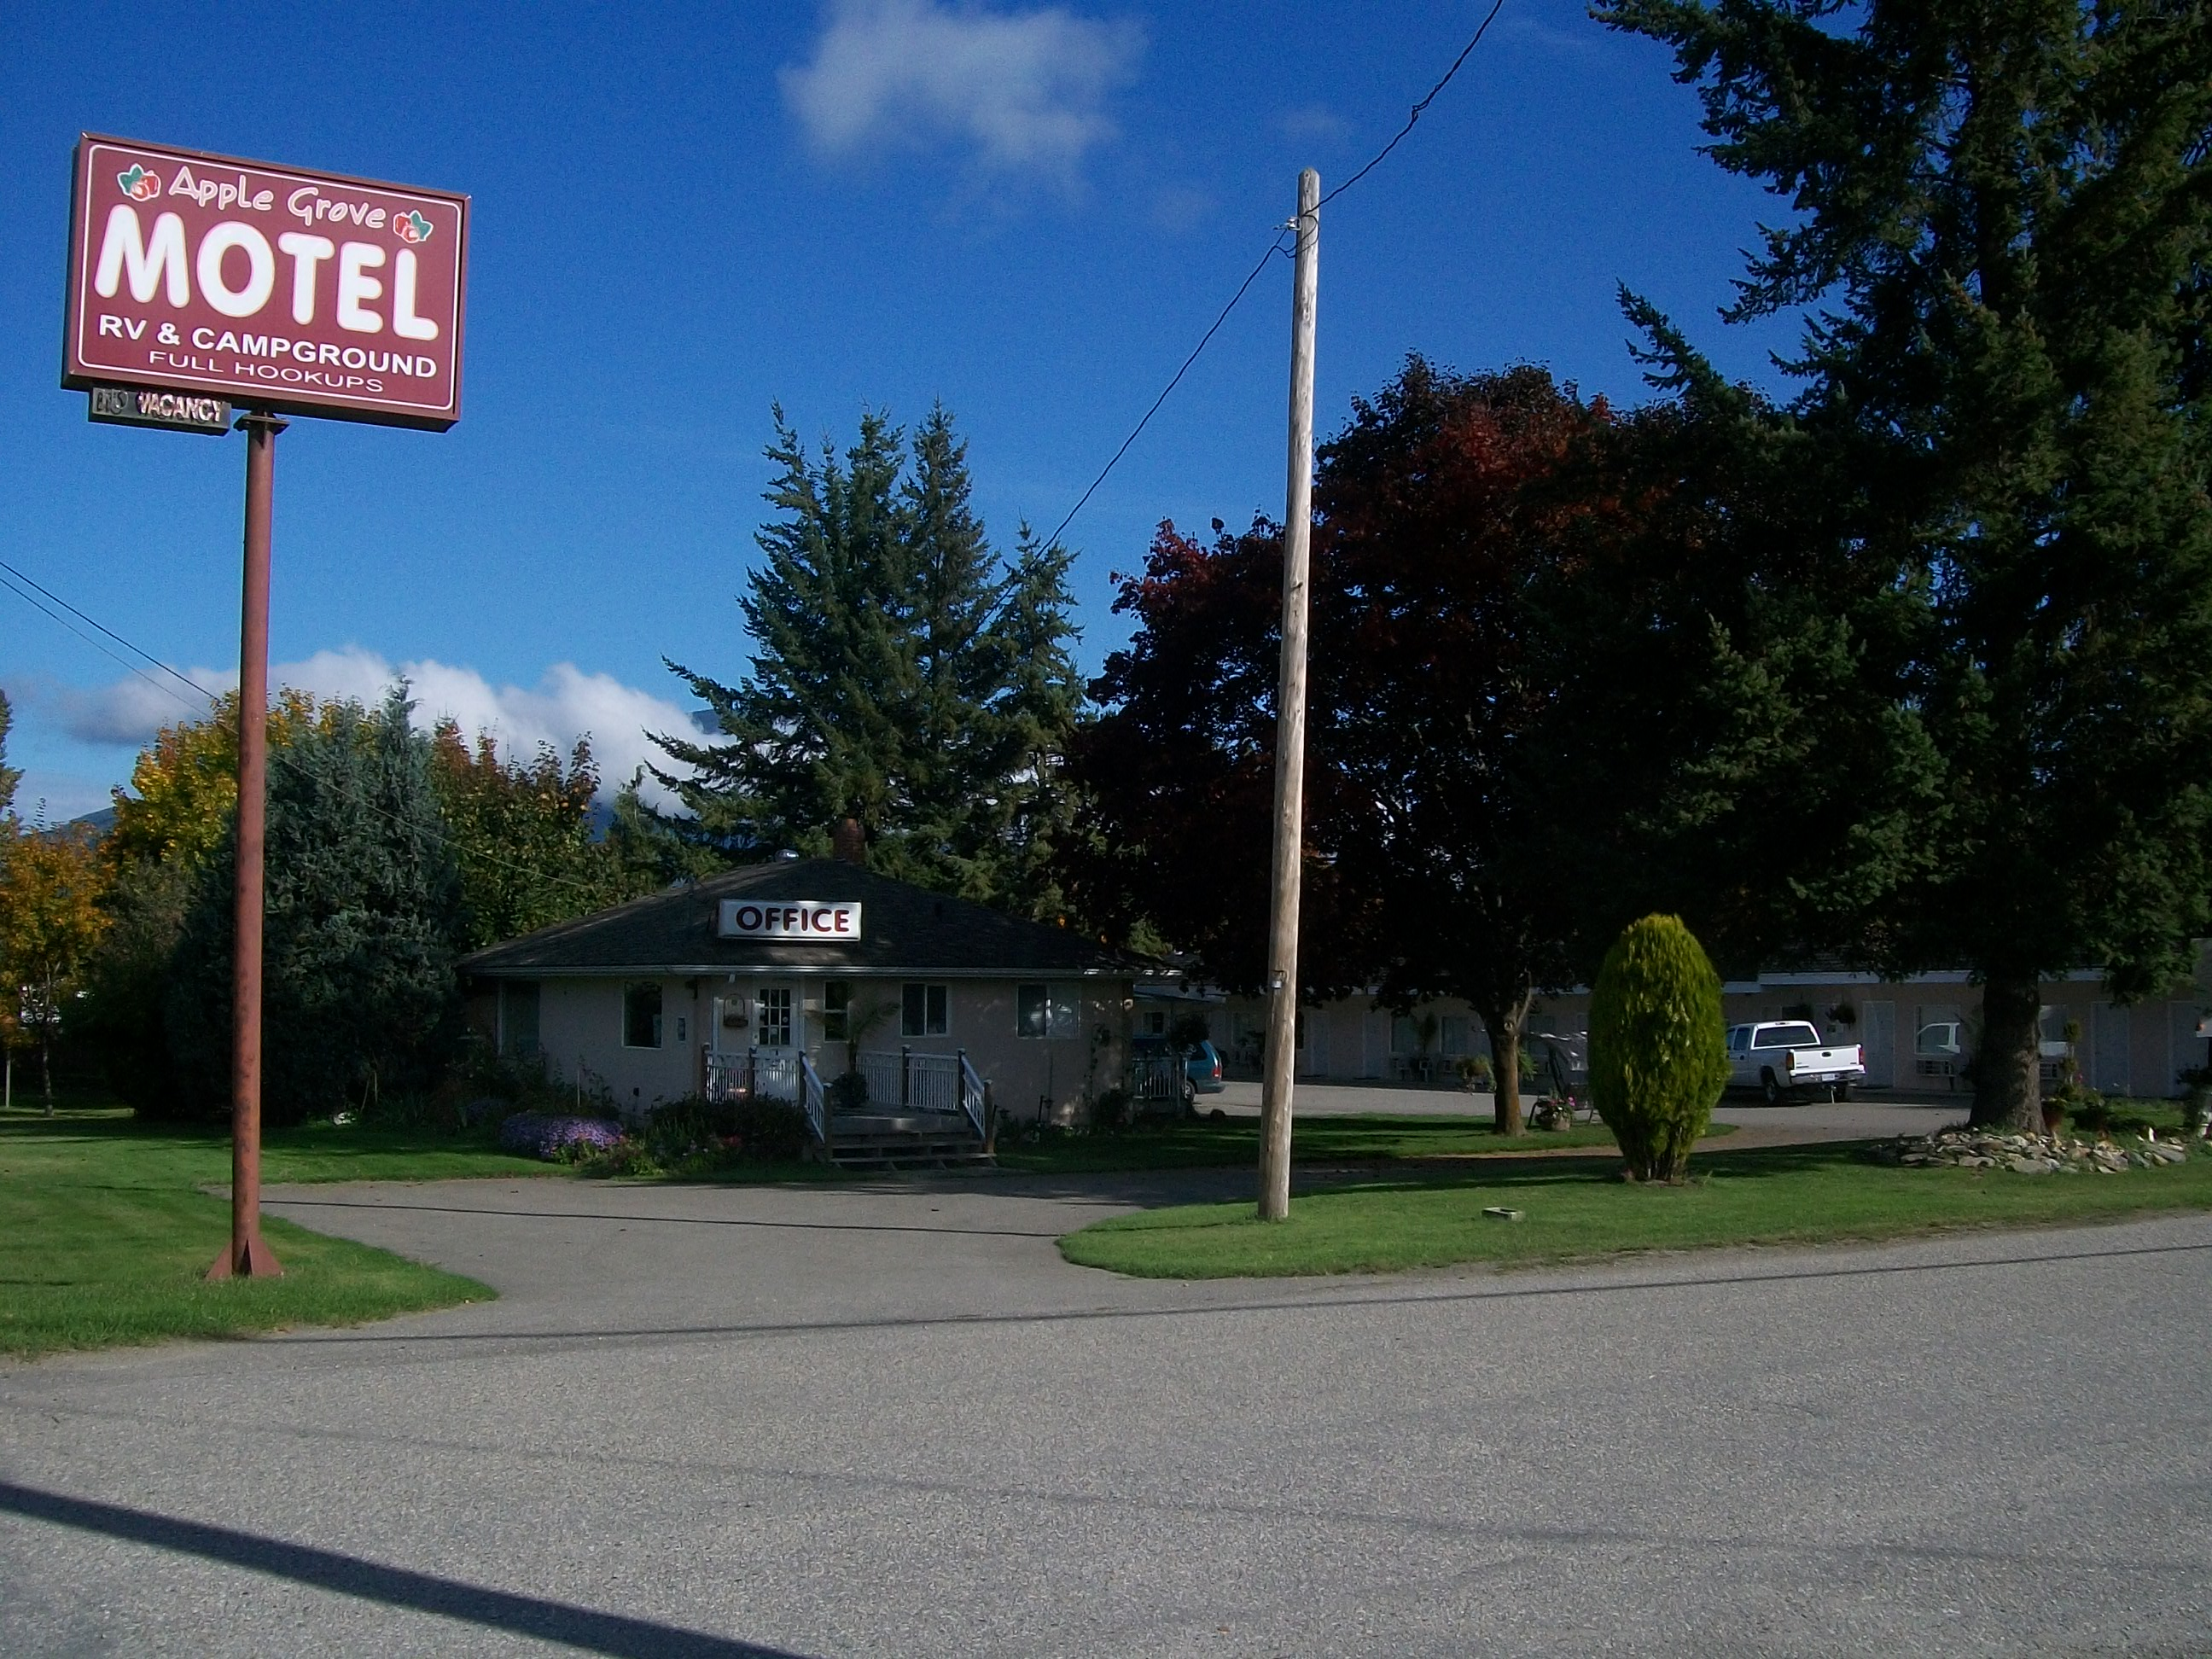 Apple Grove Motel, Campgrou